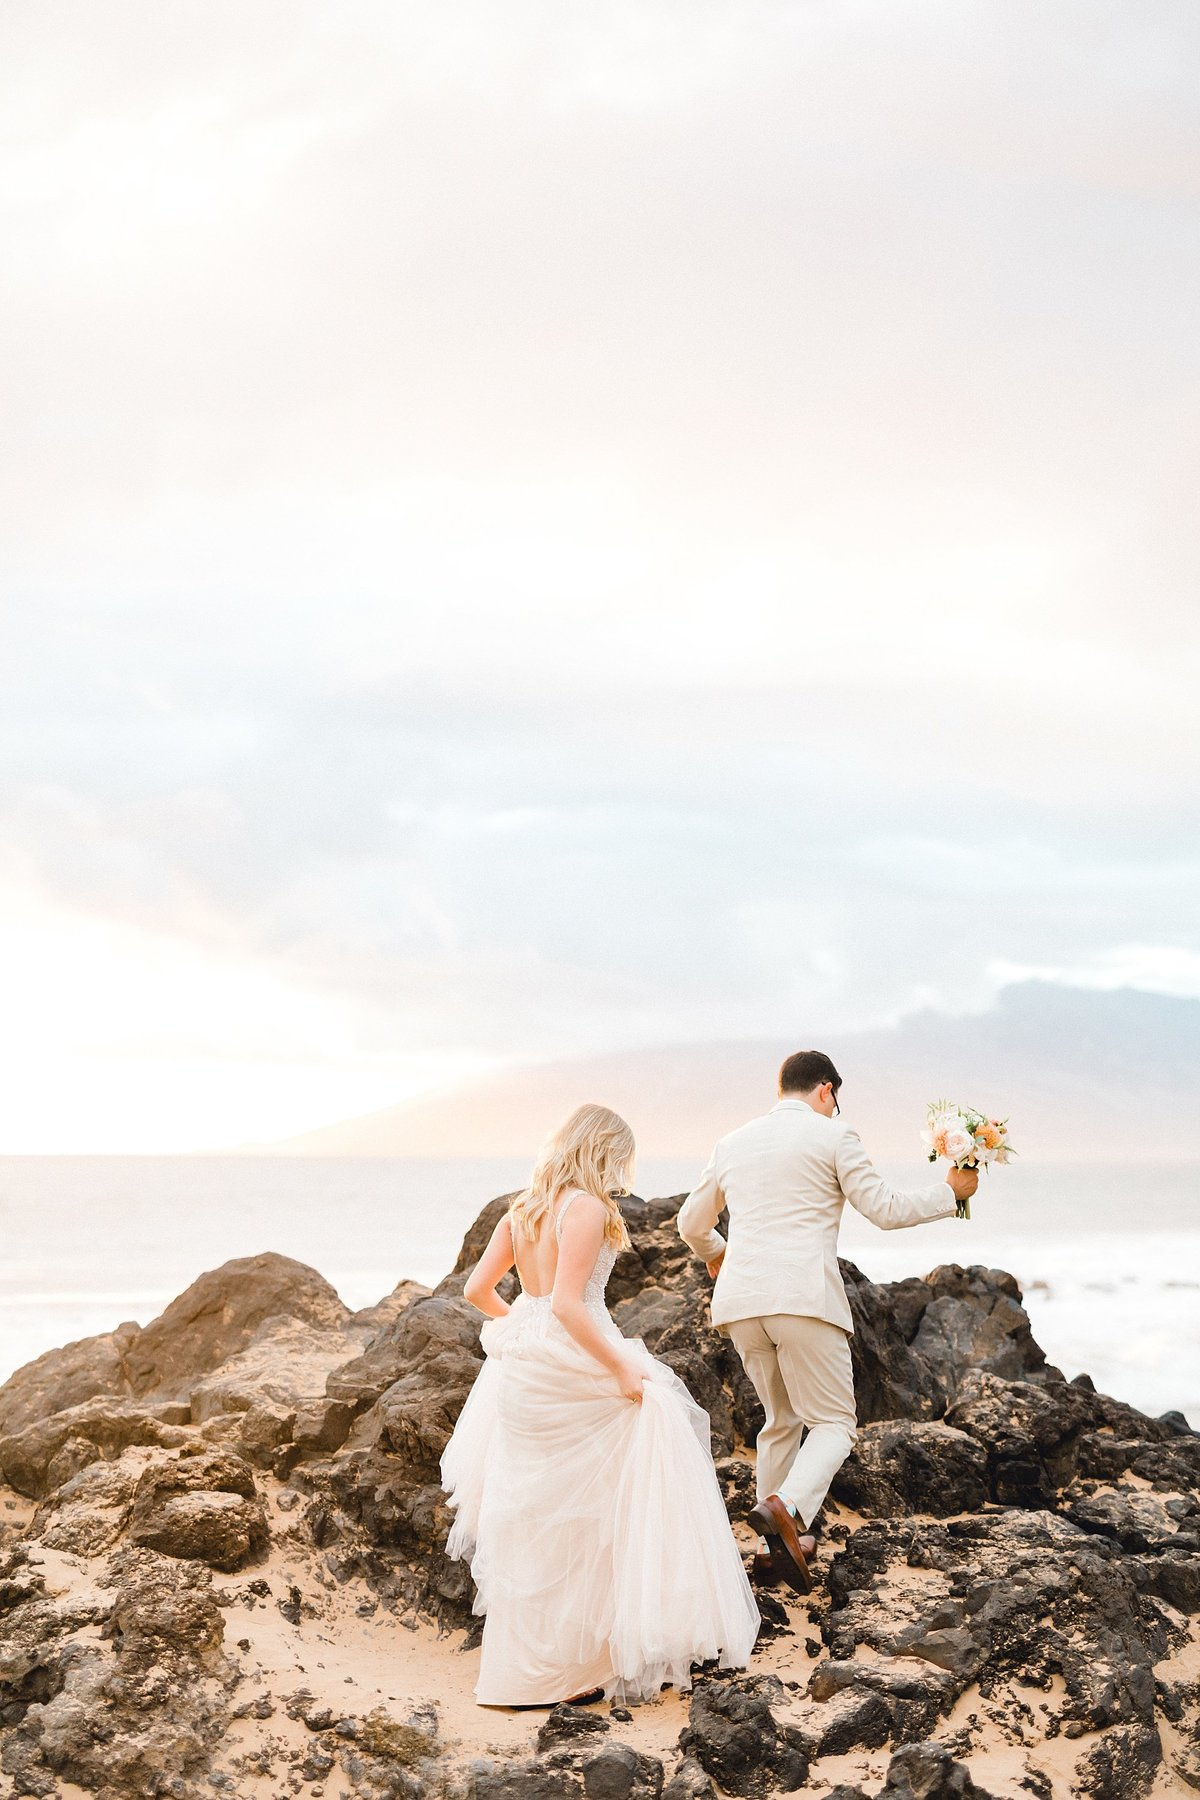 jenny_vargas-photography-maui-wedding-photographer-maui-wedding-photography-maui-photographer-maui-photographers-maui-elopement-photographer-maui-elopement-maui-wedding-maui-engagement-photographer_0946